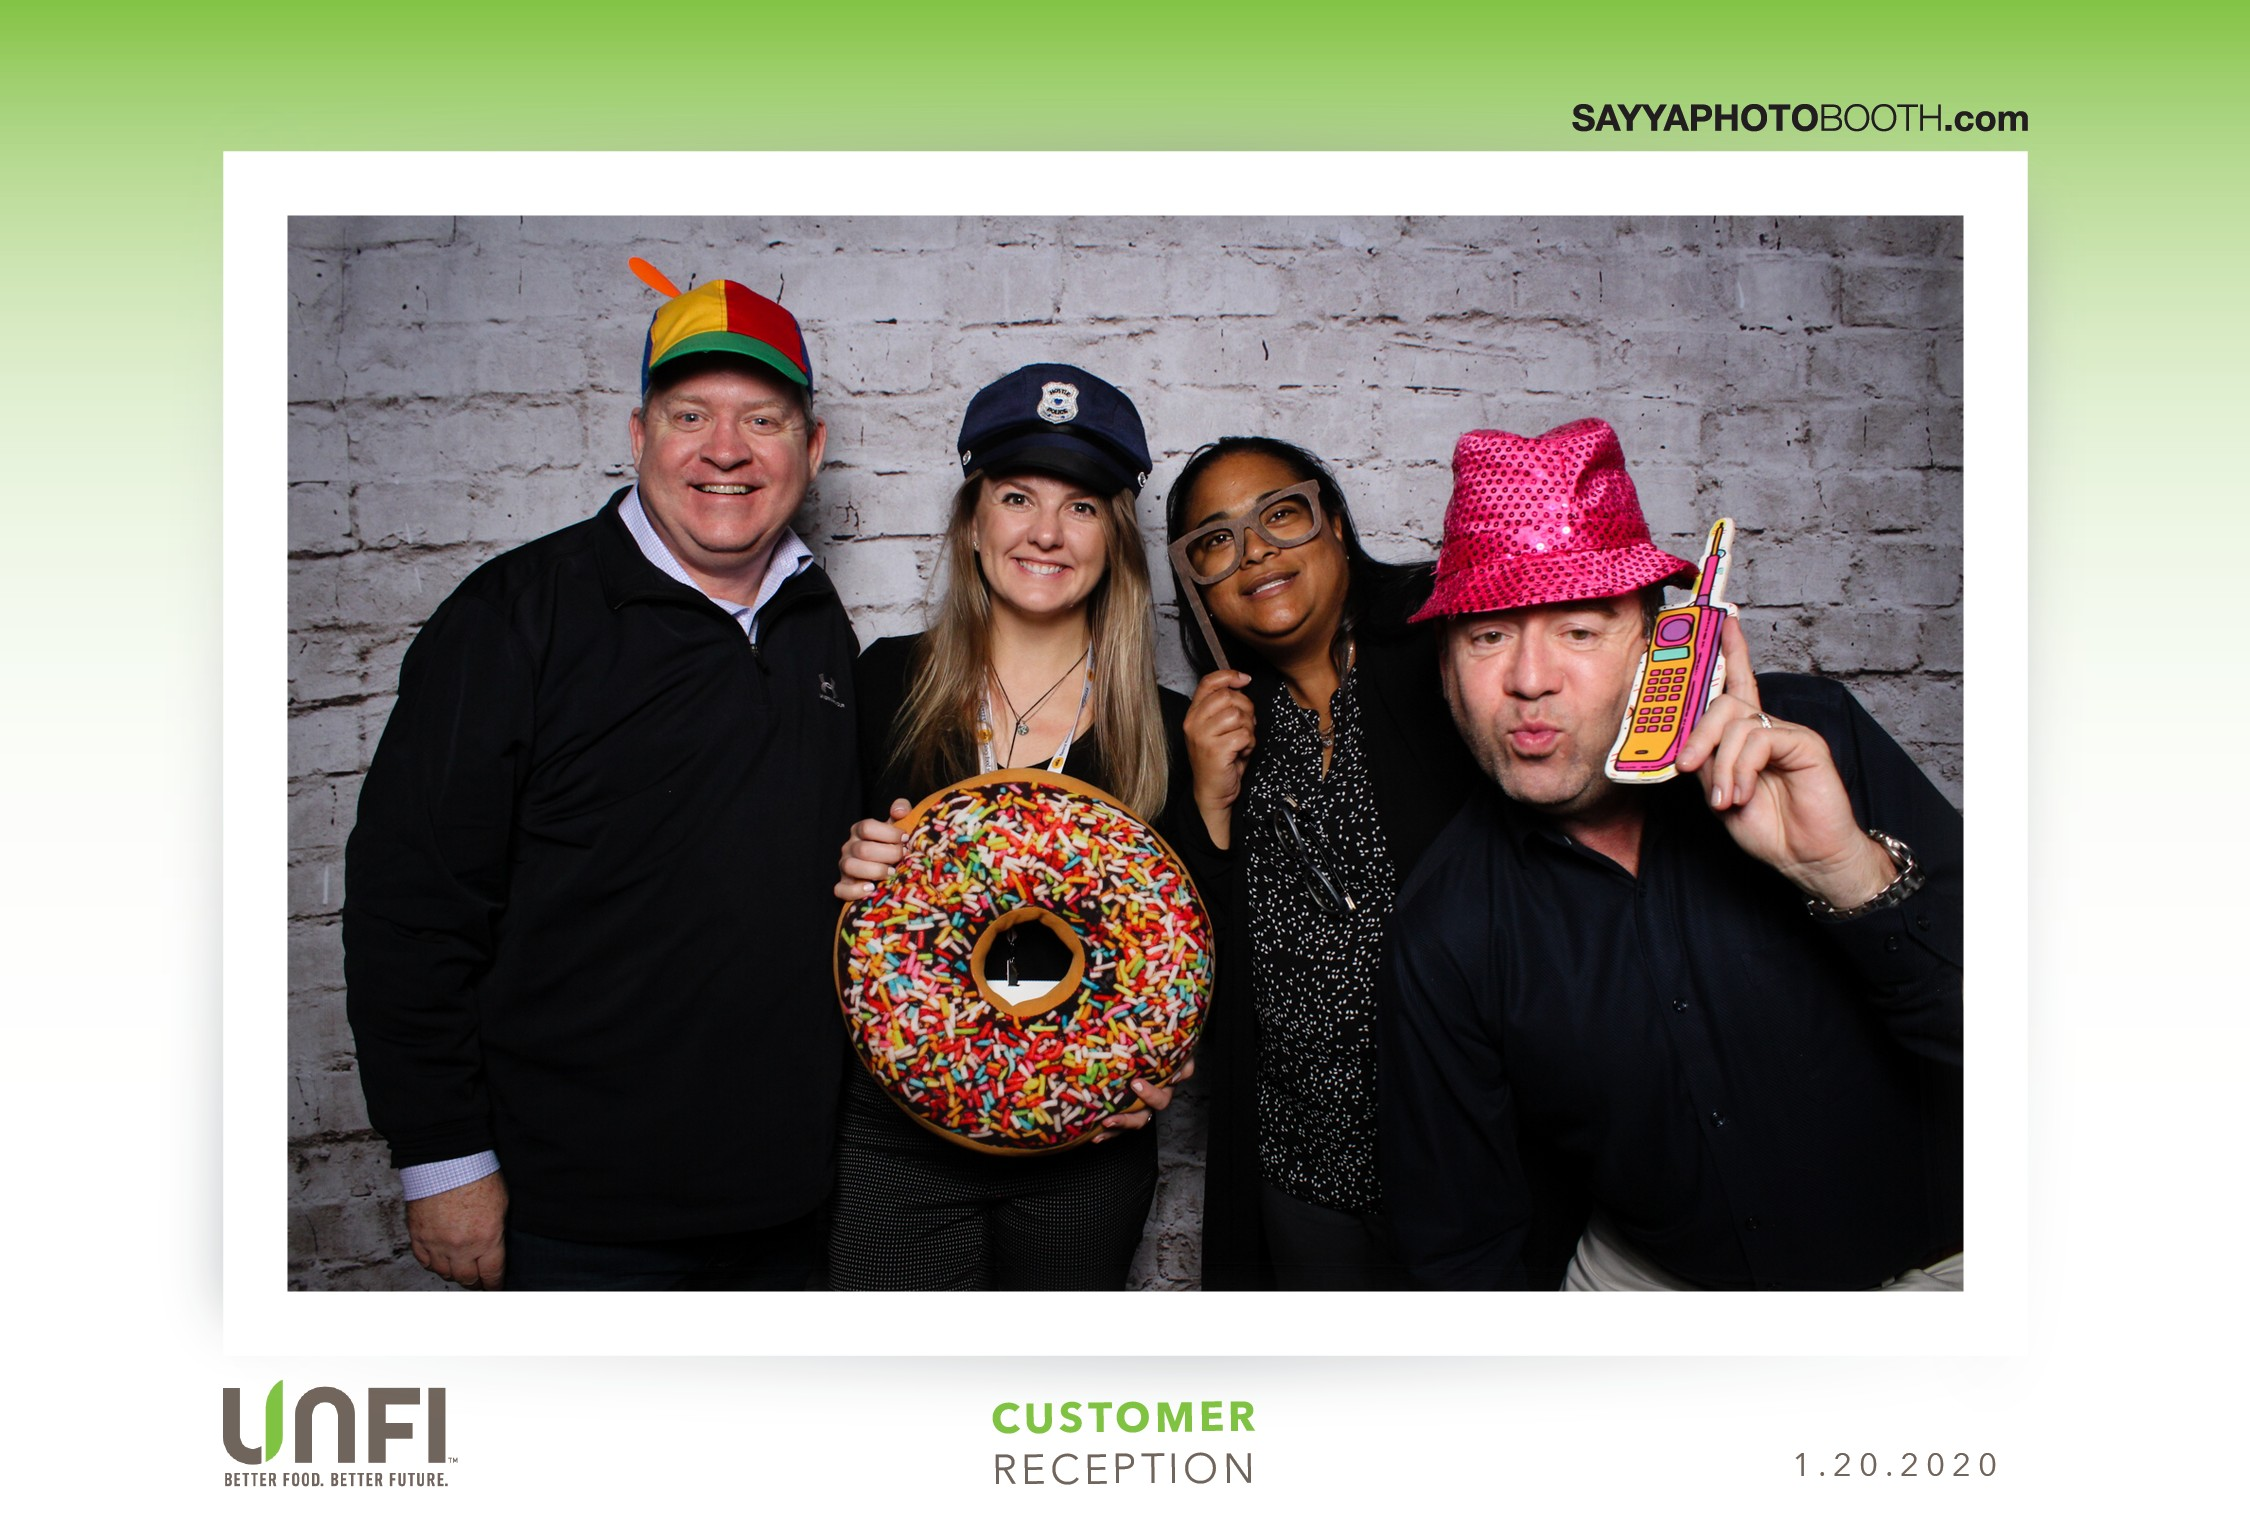 UNFI Customer Reception